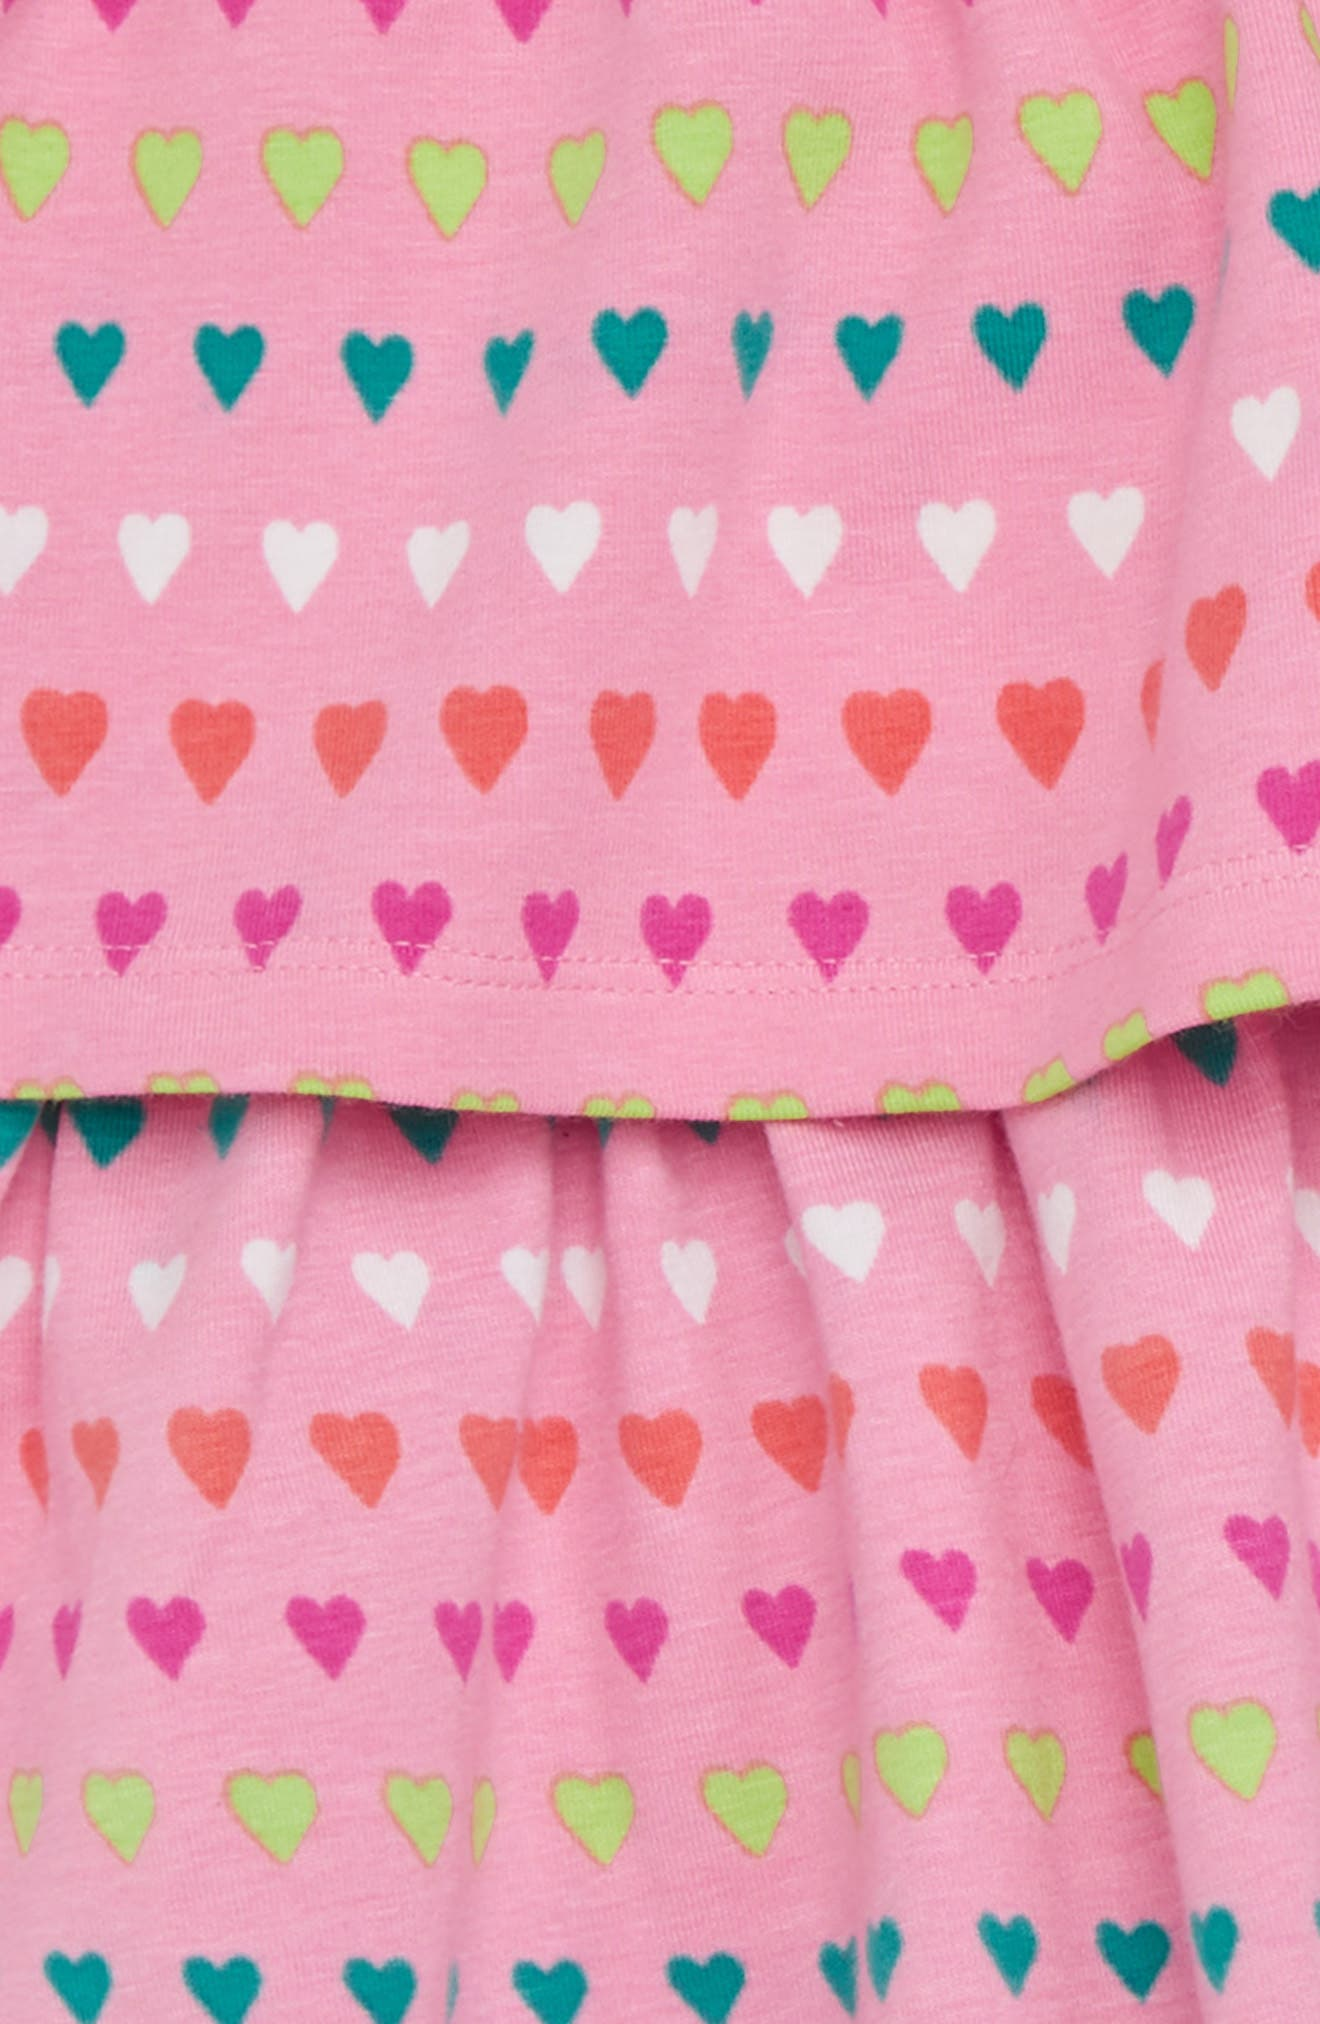 Layered Heart Print Dress,                             Alternate thumbnail 2, color,                             650